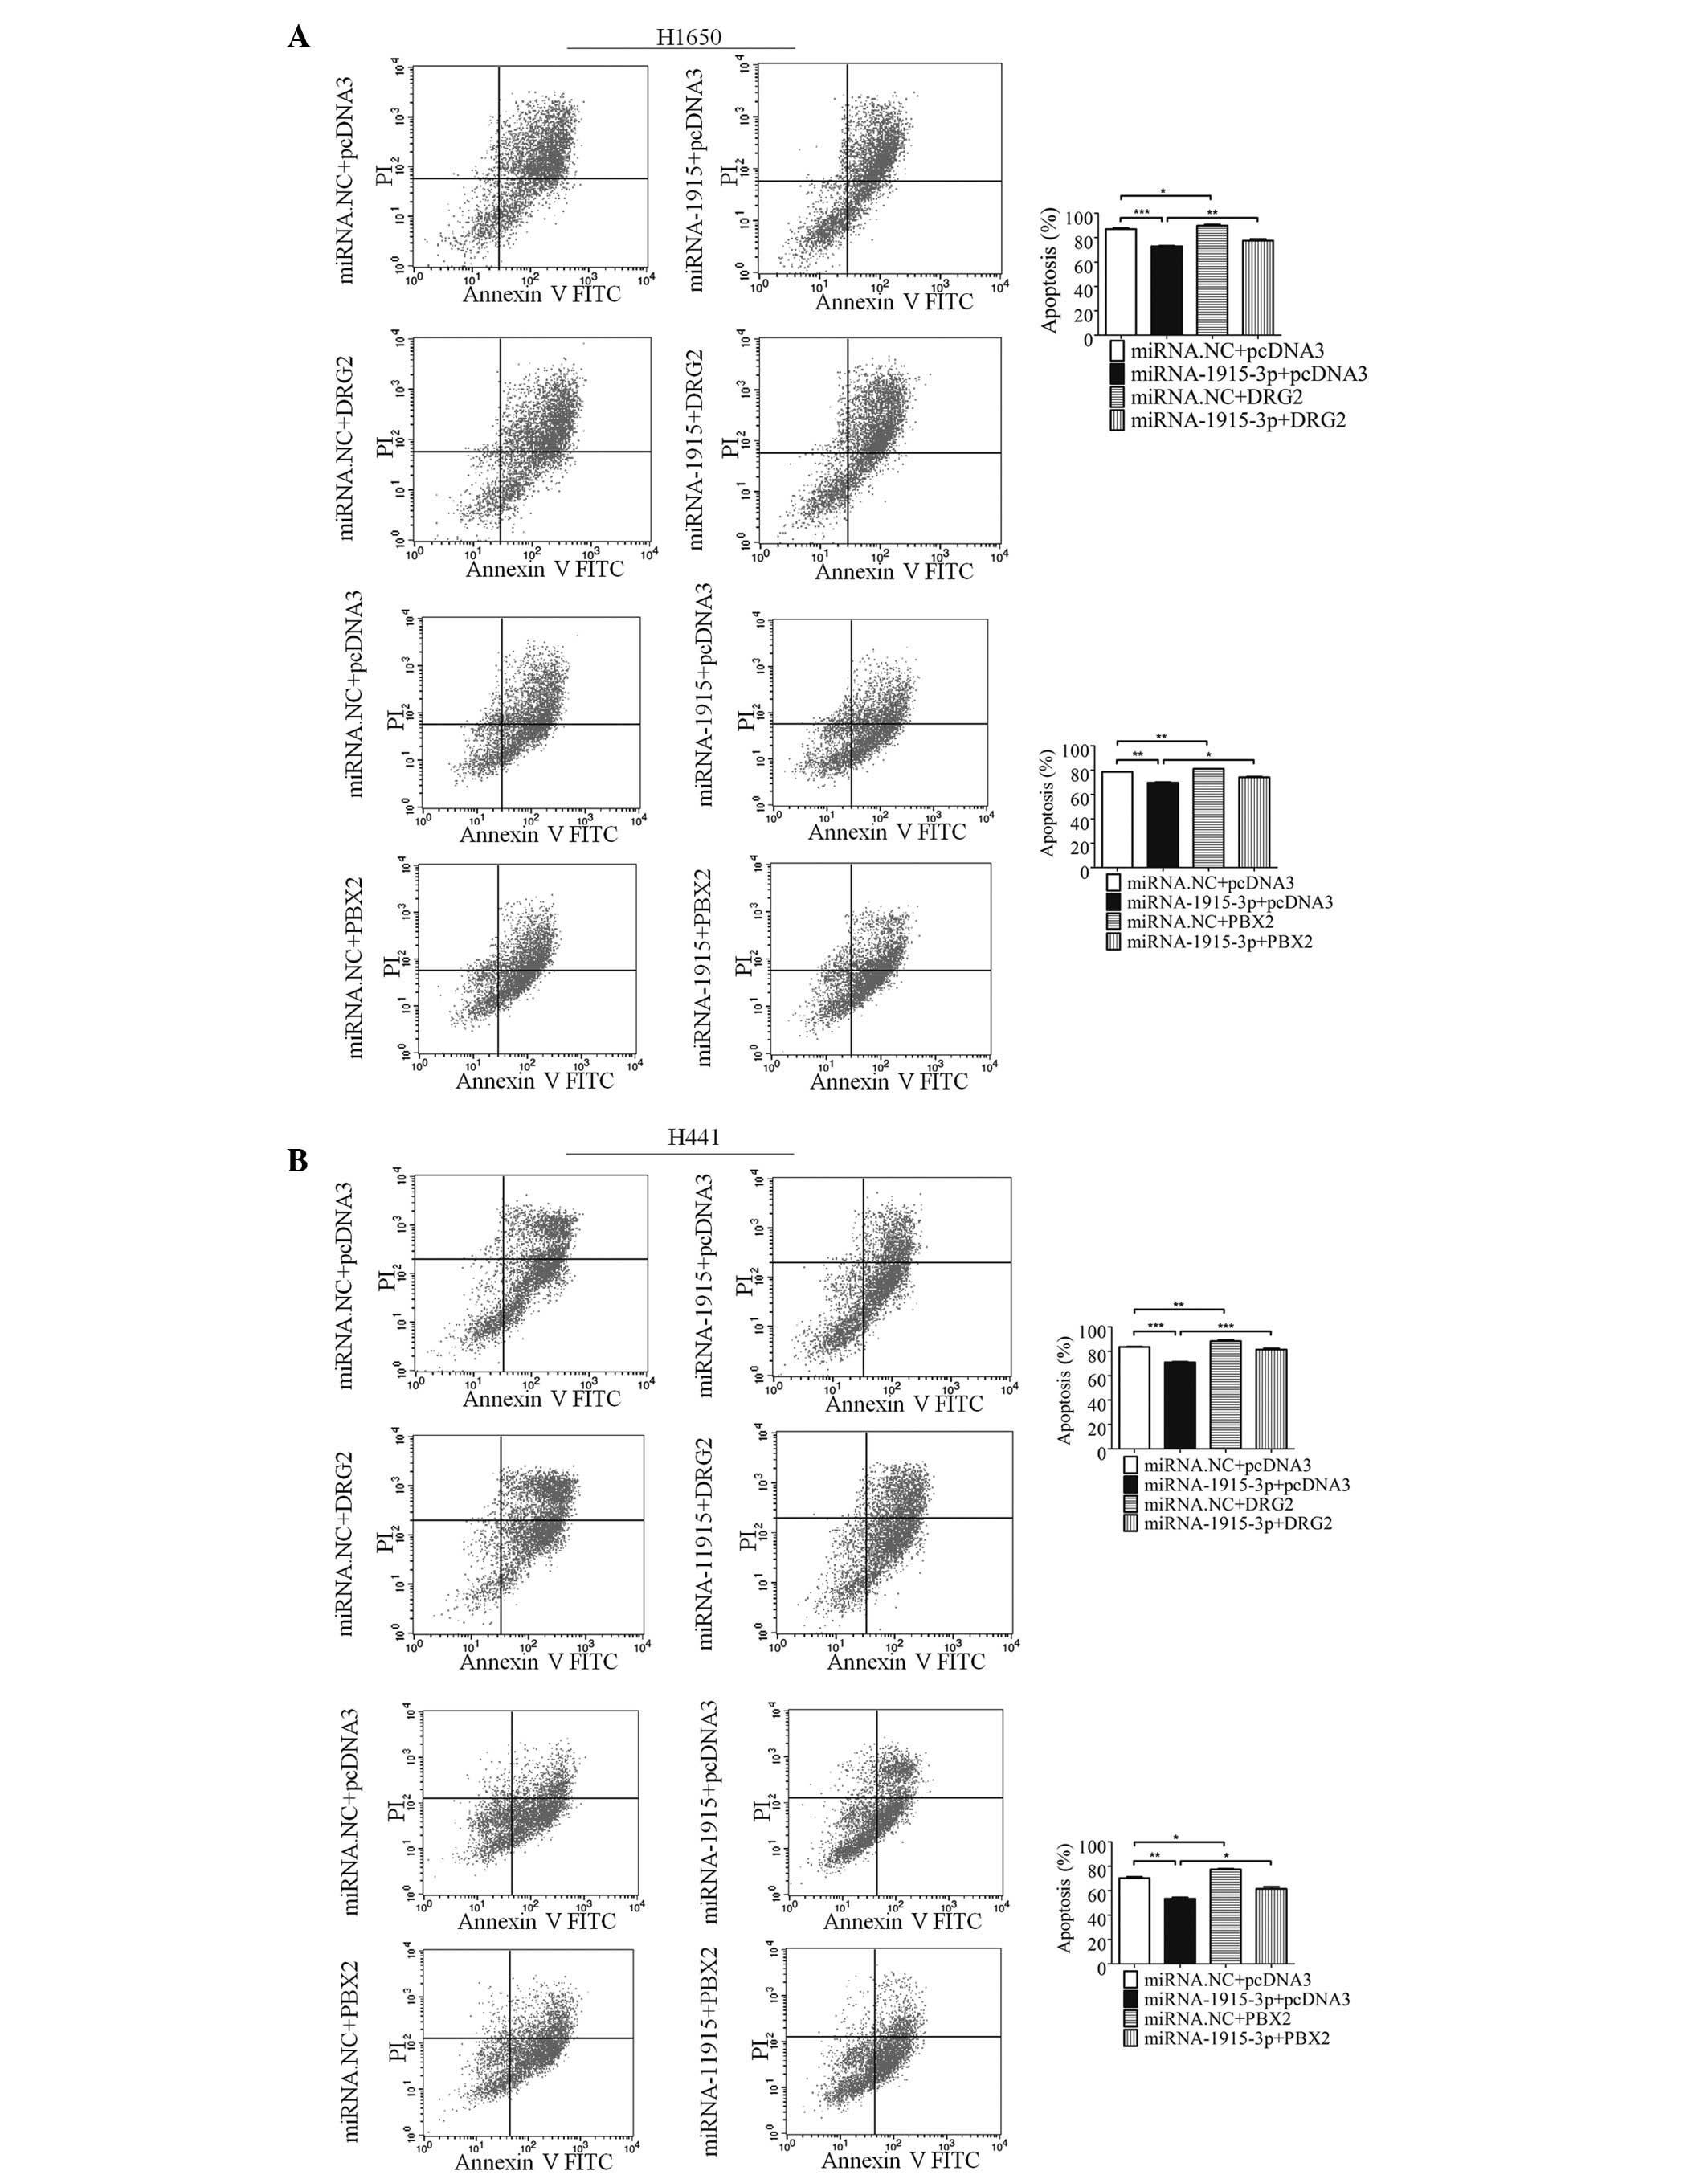 h 050505 auto electrical wiring diagrammicrorna u20111915 u20113p prevents the apoptosis of lung cancer